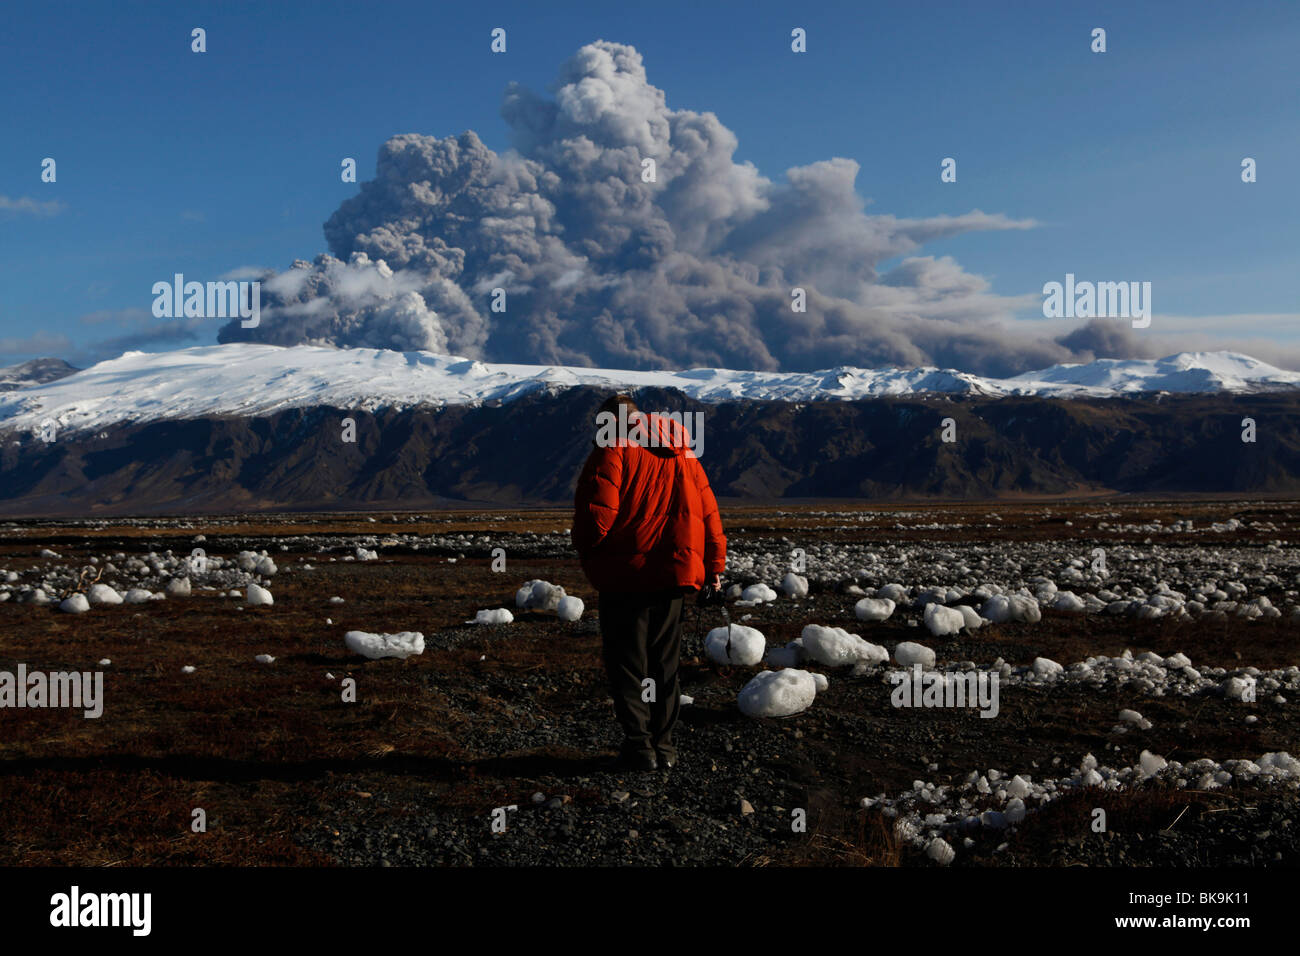 The eruption at Eyjafjallajokull in Iceland April 2010. - Stock Image